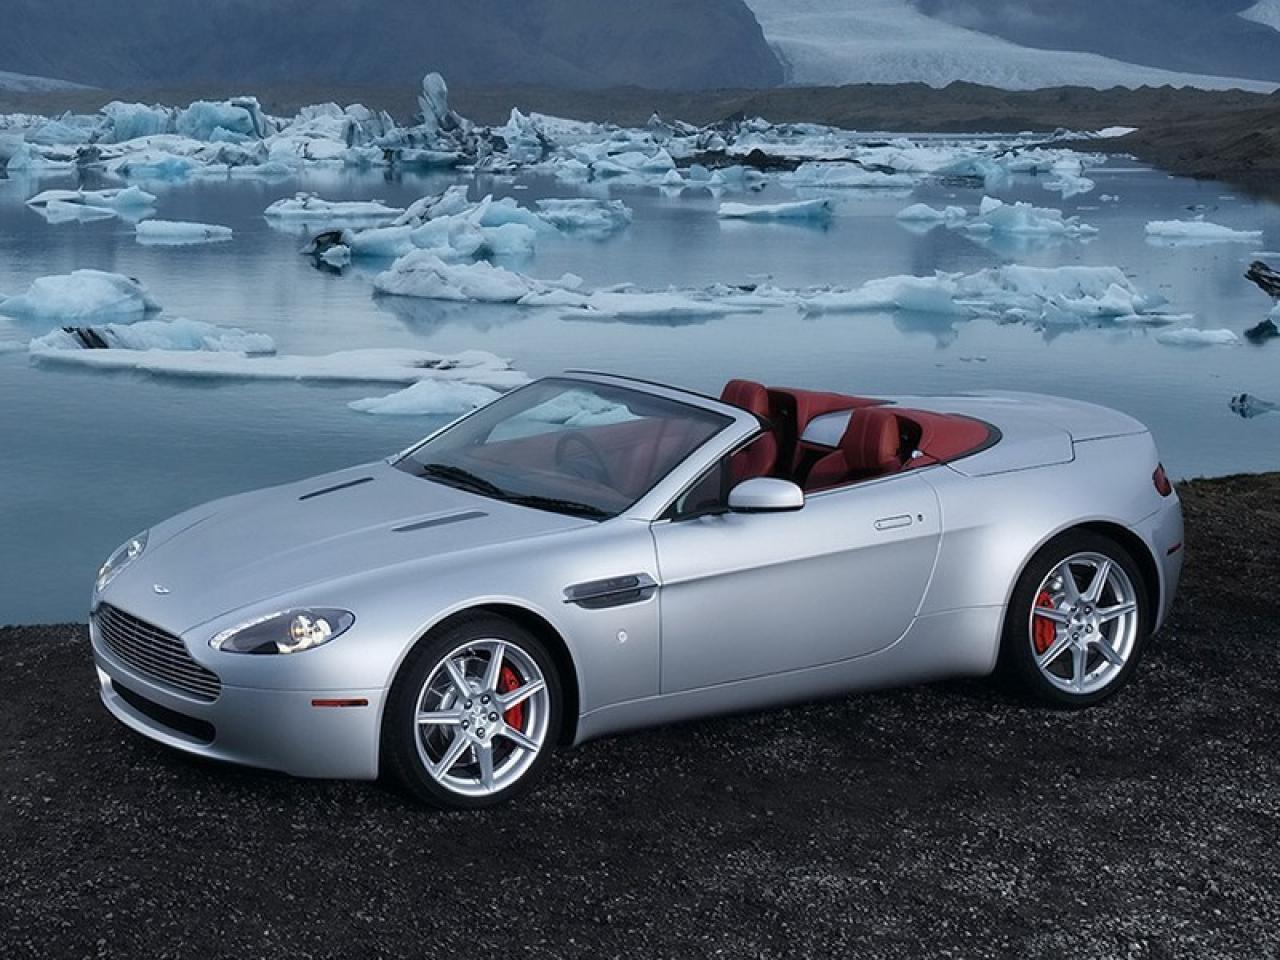 2007 aston martin v8 vantage information and photos zombiedrive. Black Bedroom Furniture Sets. Home Design Ideas